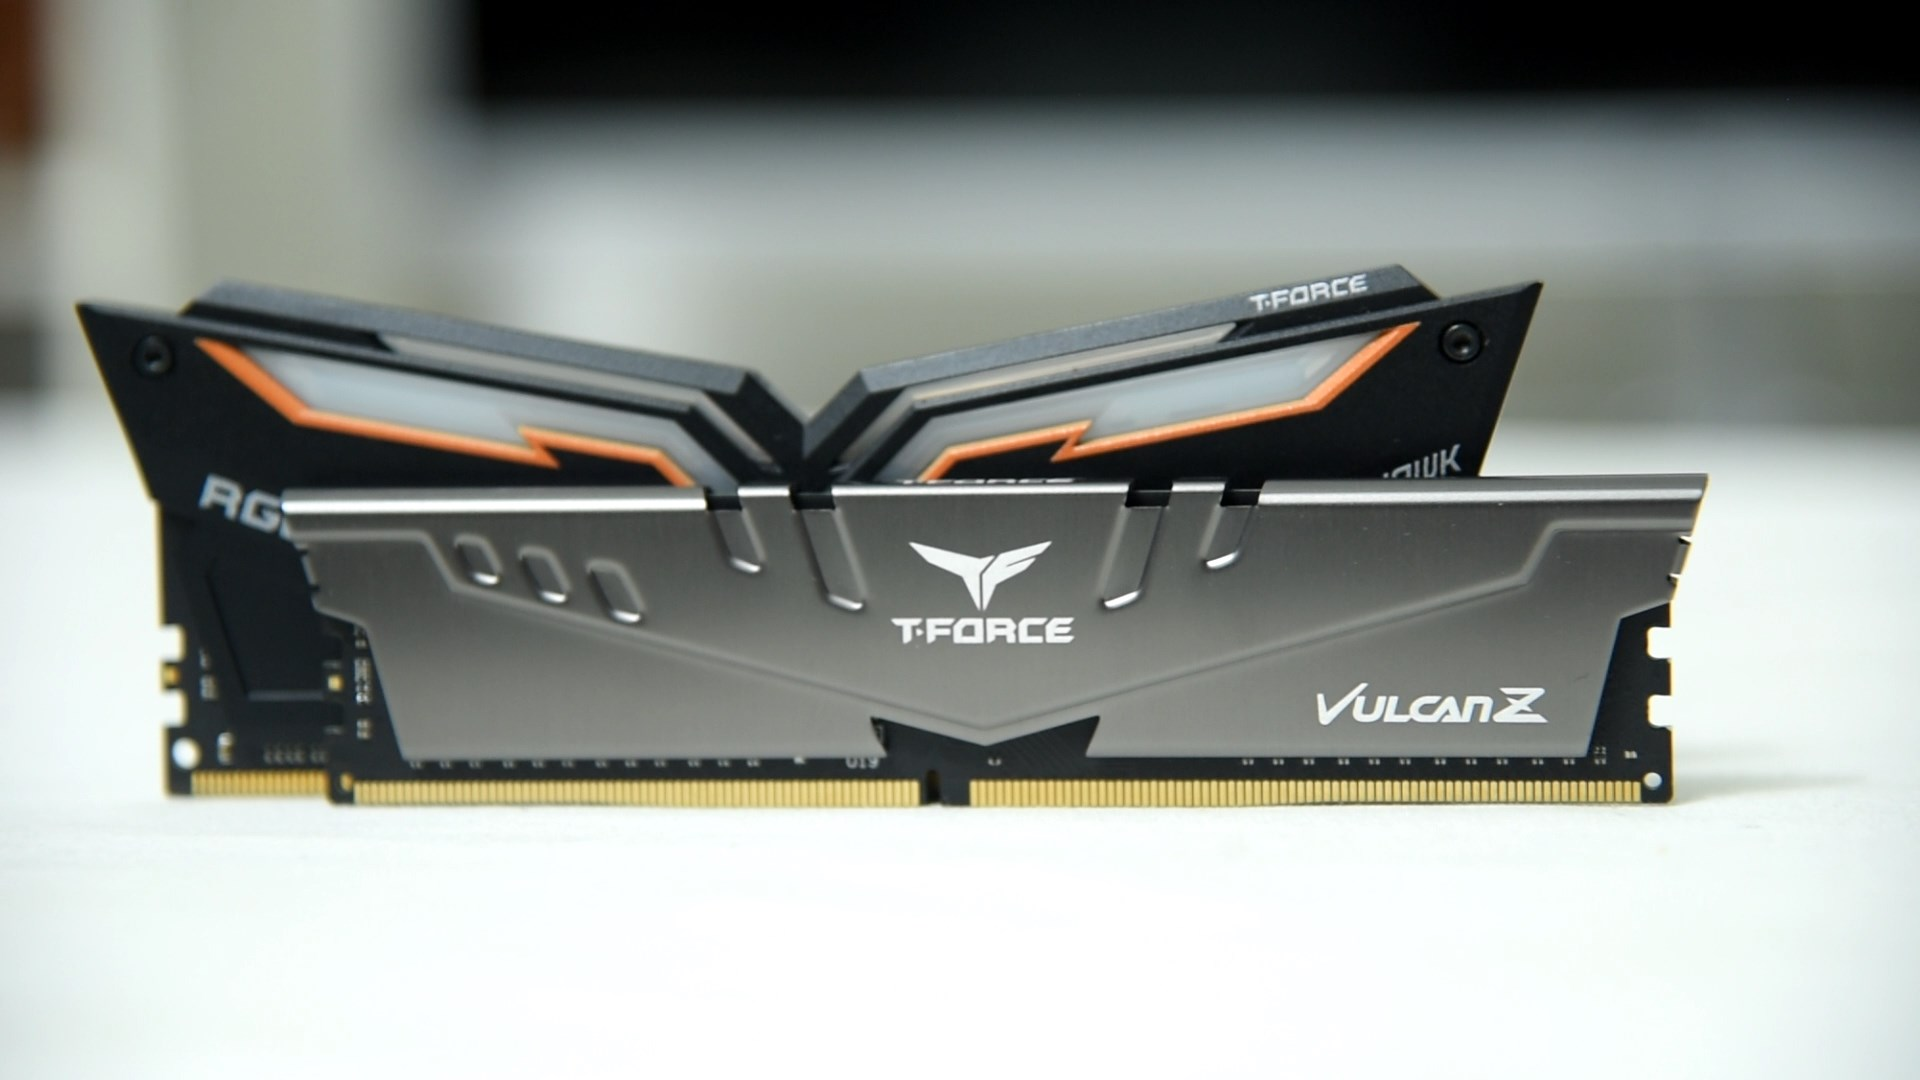 T-Force Vulcan Z DDR4 3200Mhz Memory Review 2